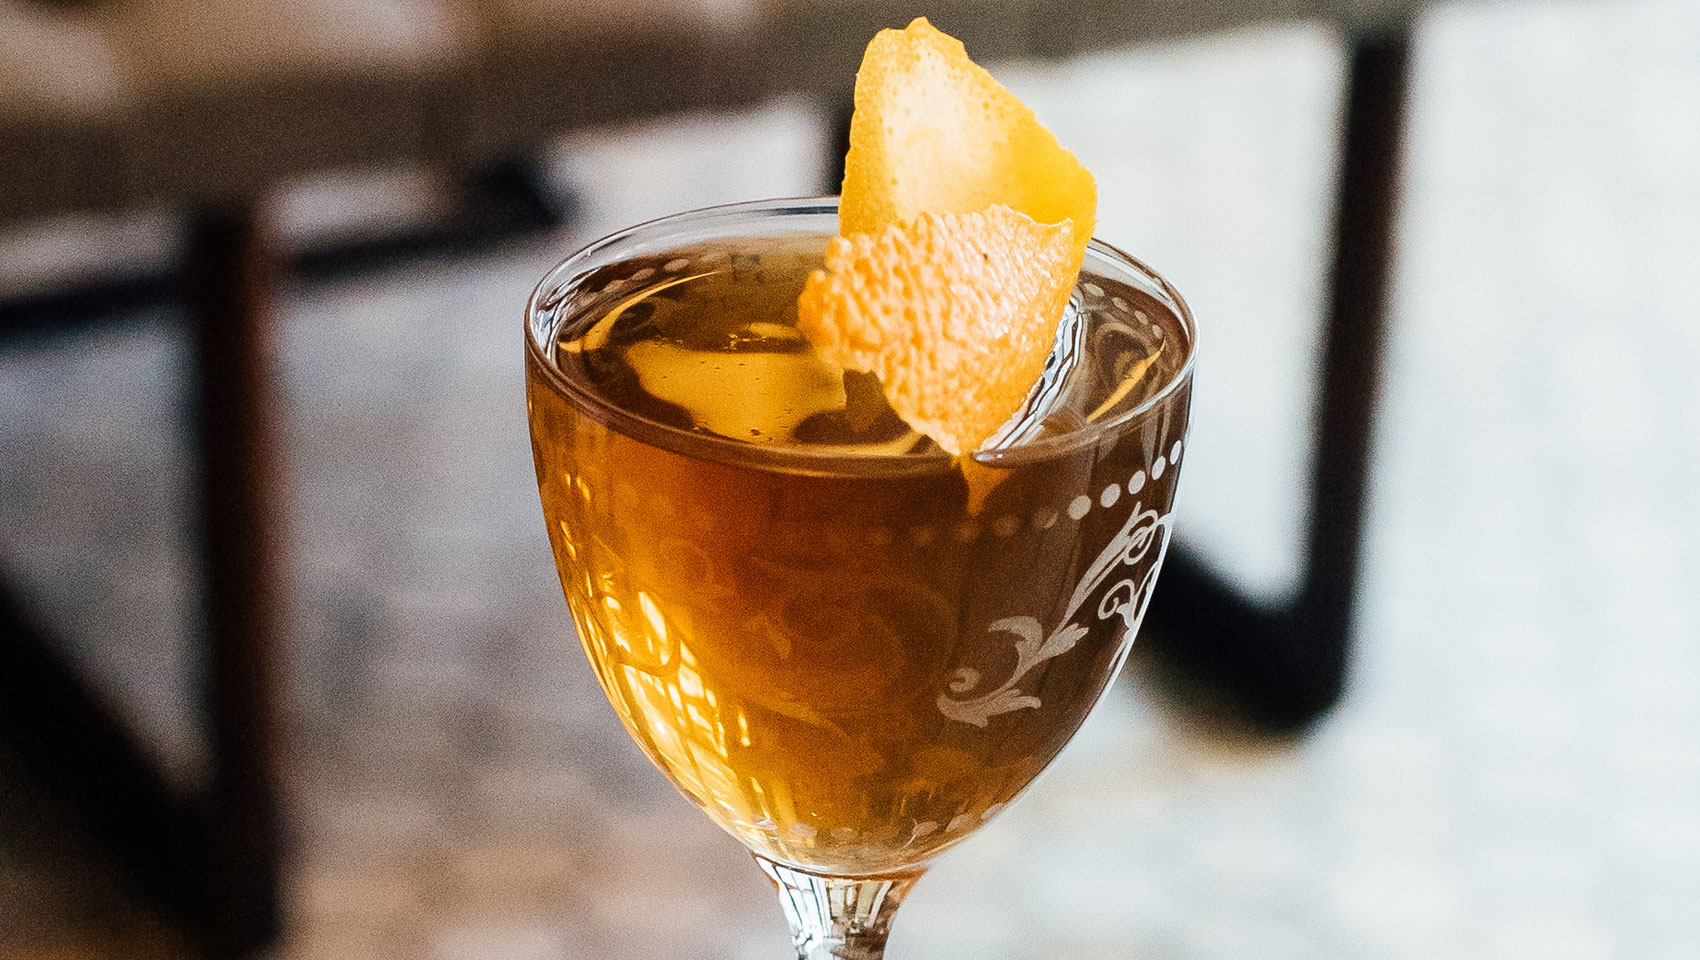 The Vine cocktail with orange peel garnish